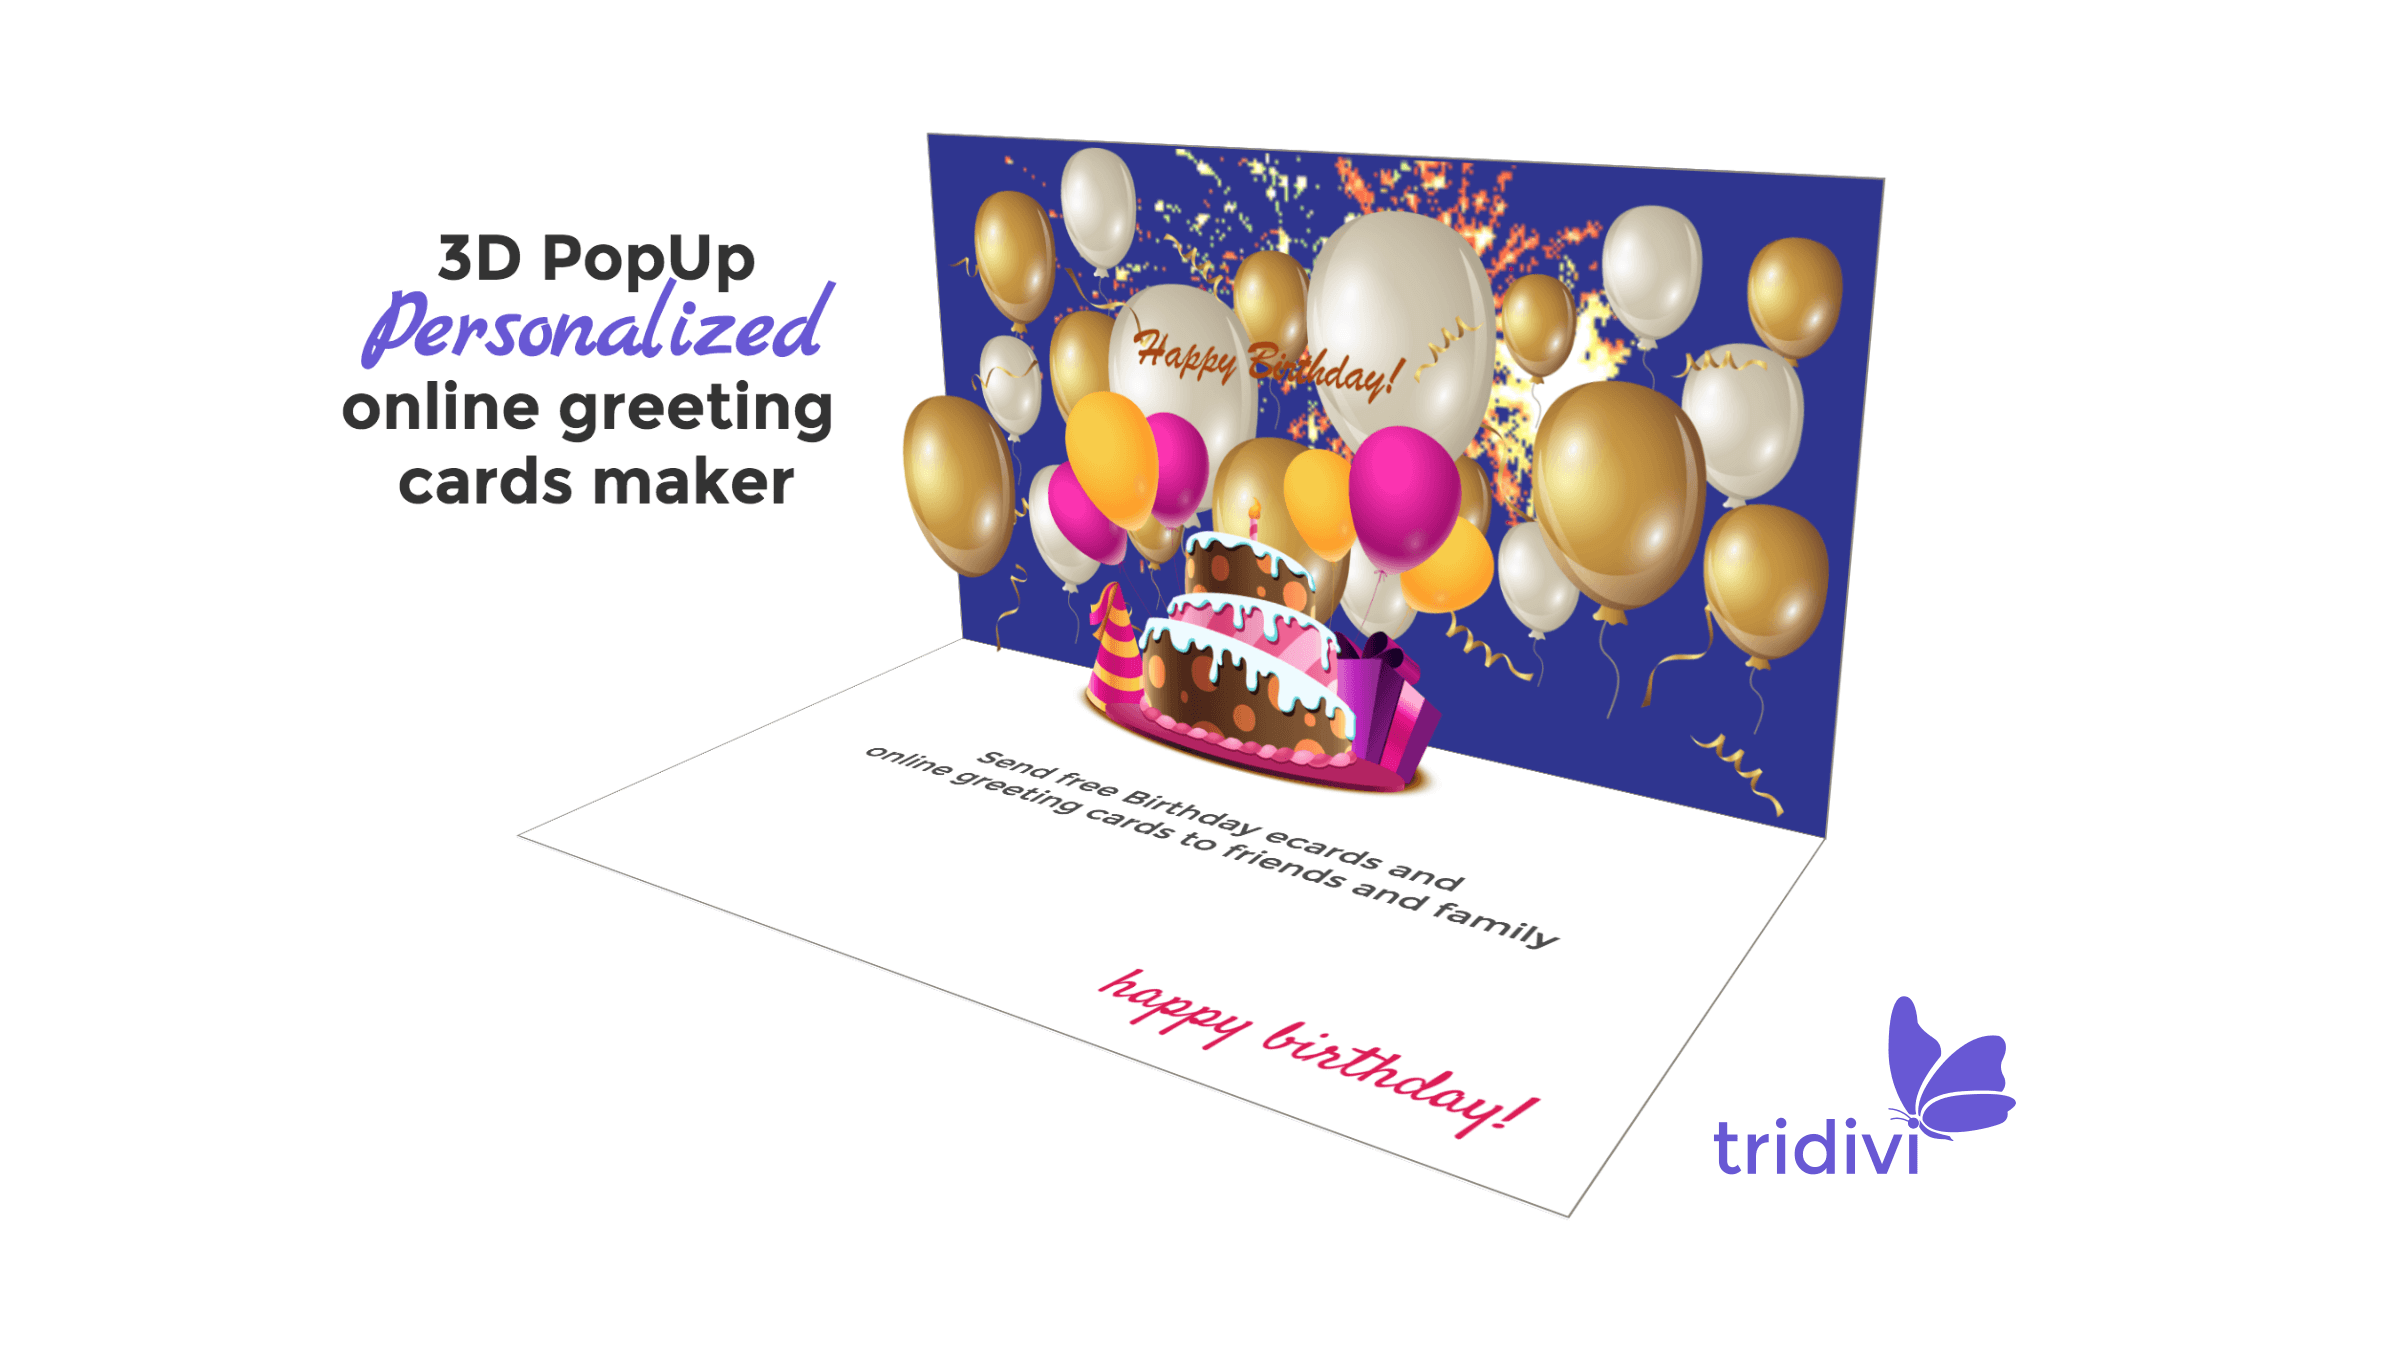 3D Pop Up Happy Birthday greeting cards and ecards